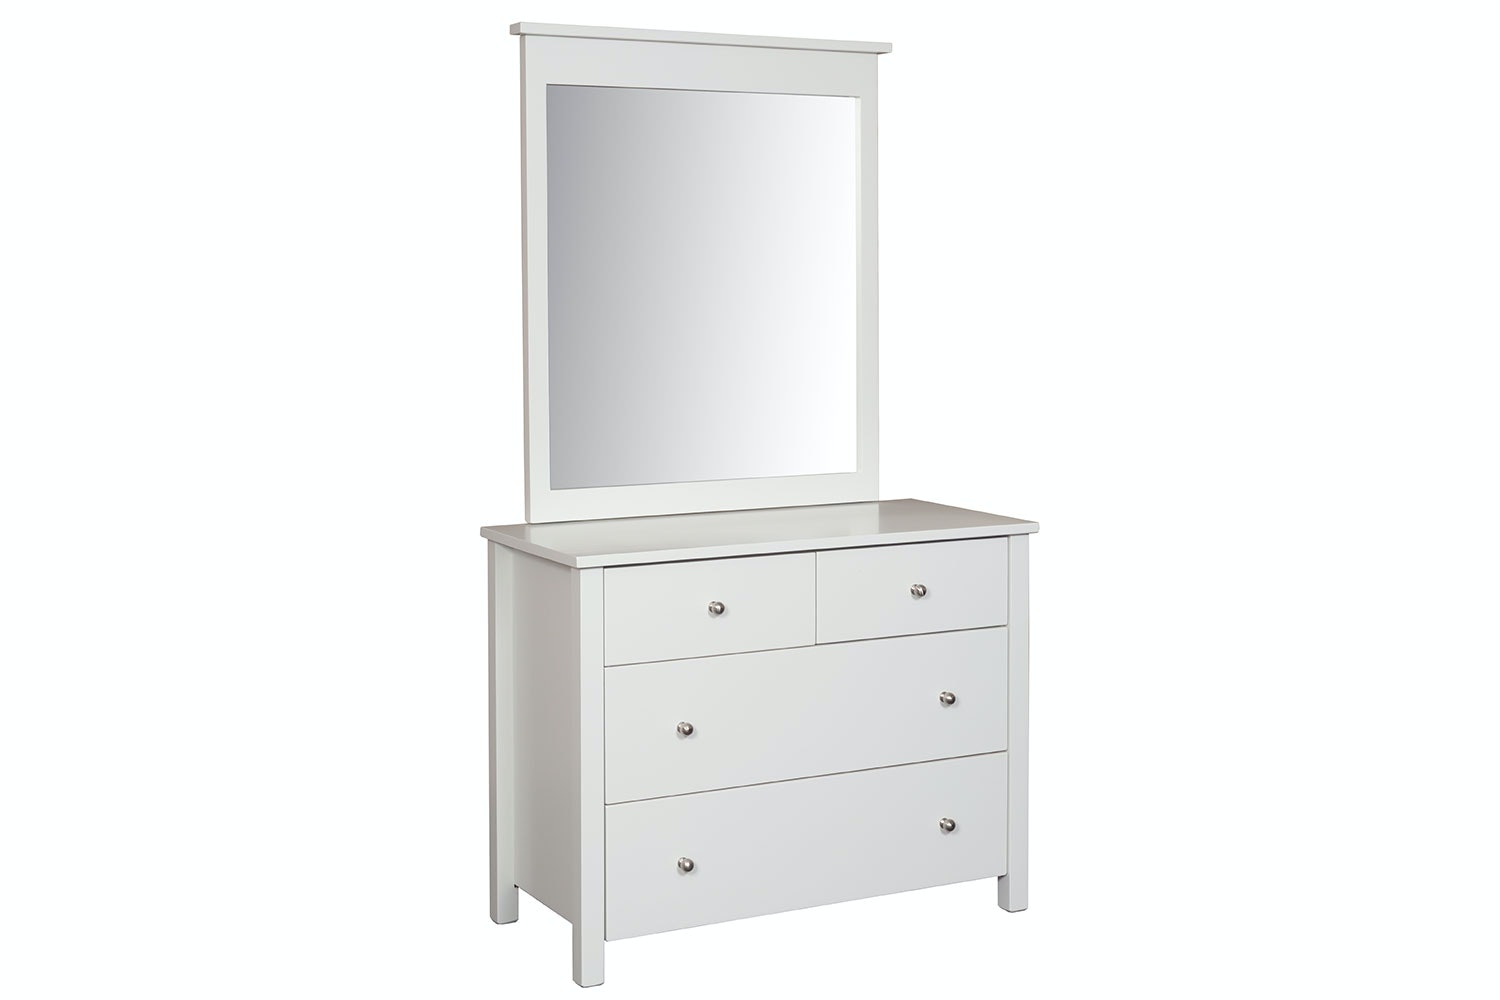 Tillsdale Kids 4 Drawer Dresser with Mirror by Coastwood Furniture